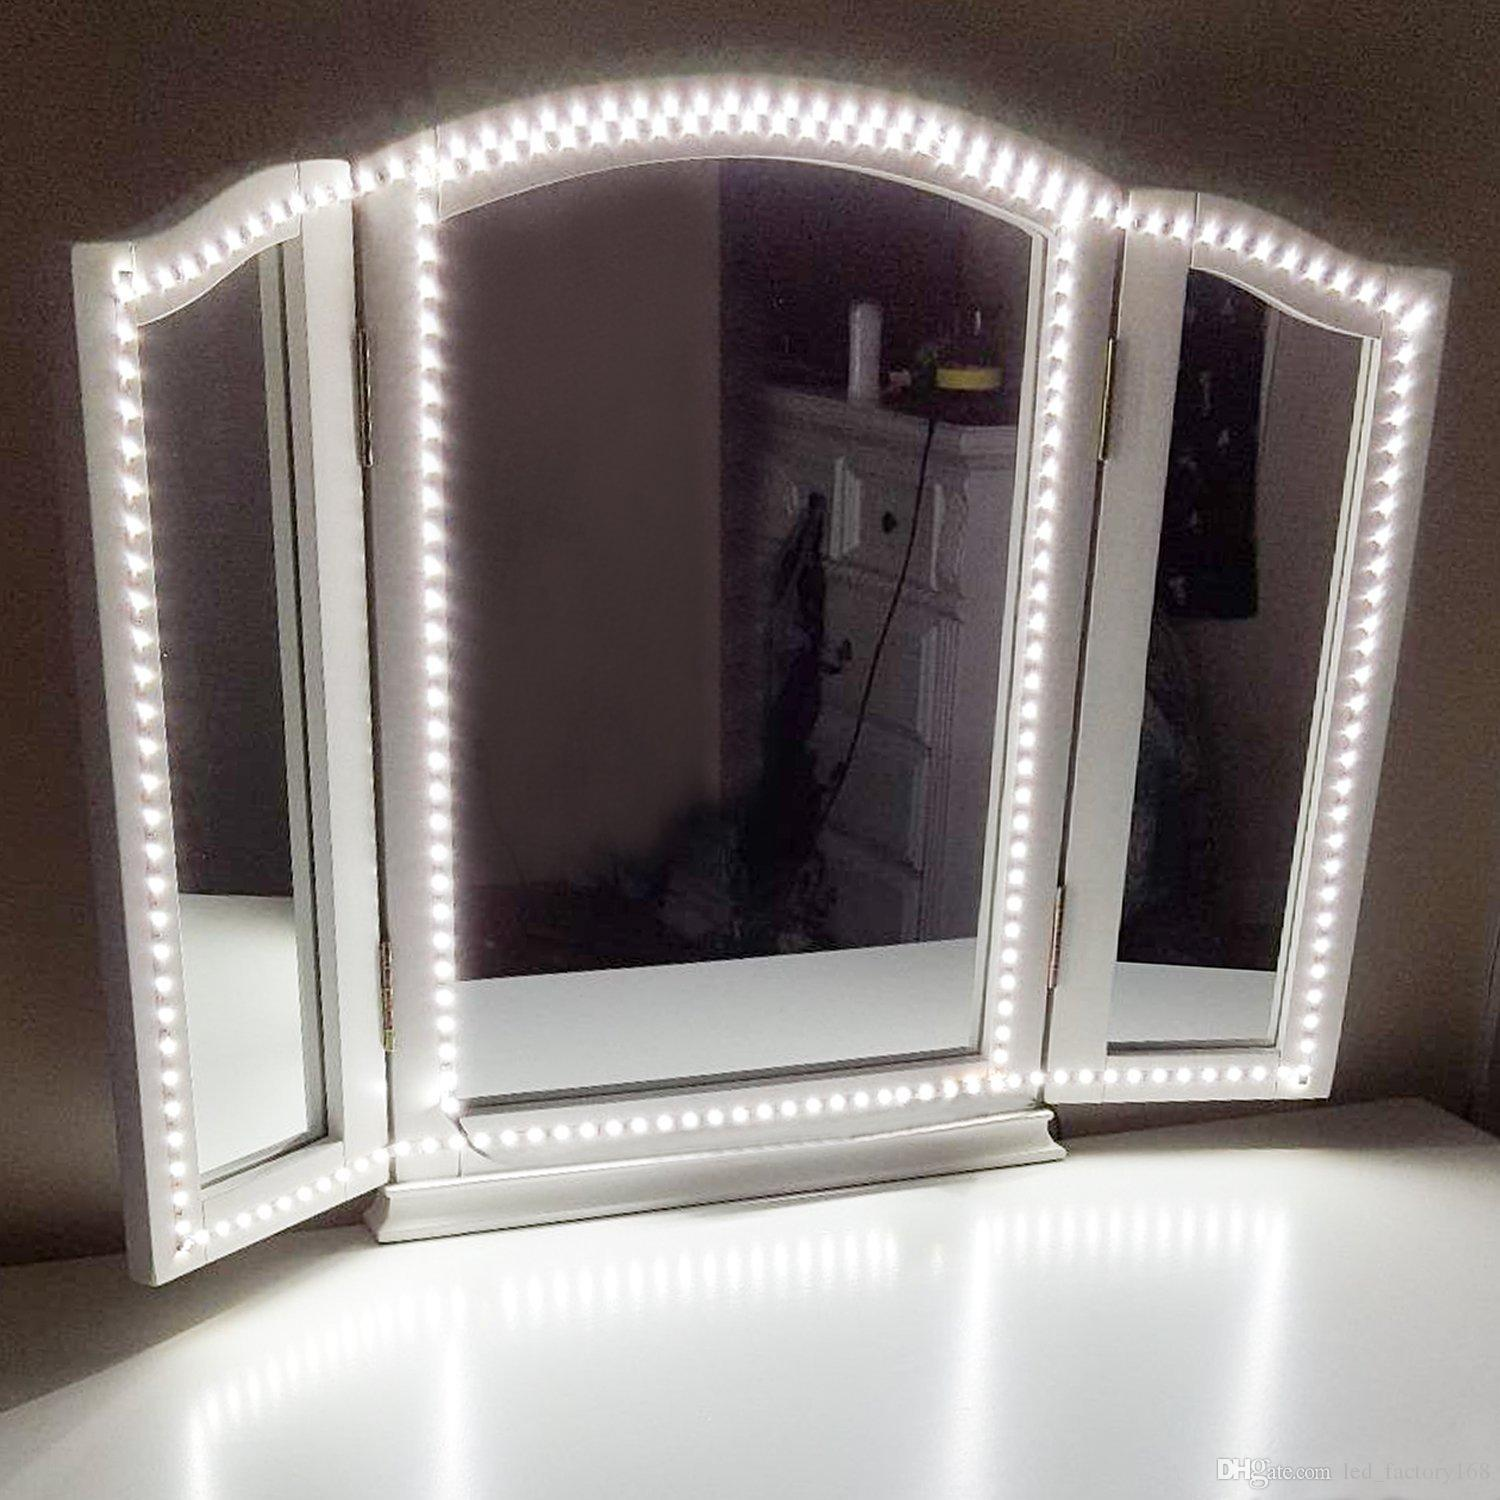 Picture of: Good LED Vanity Mirror